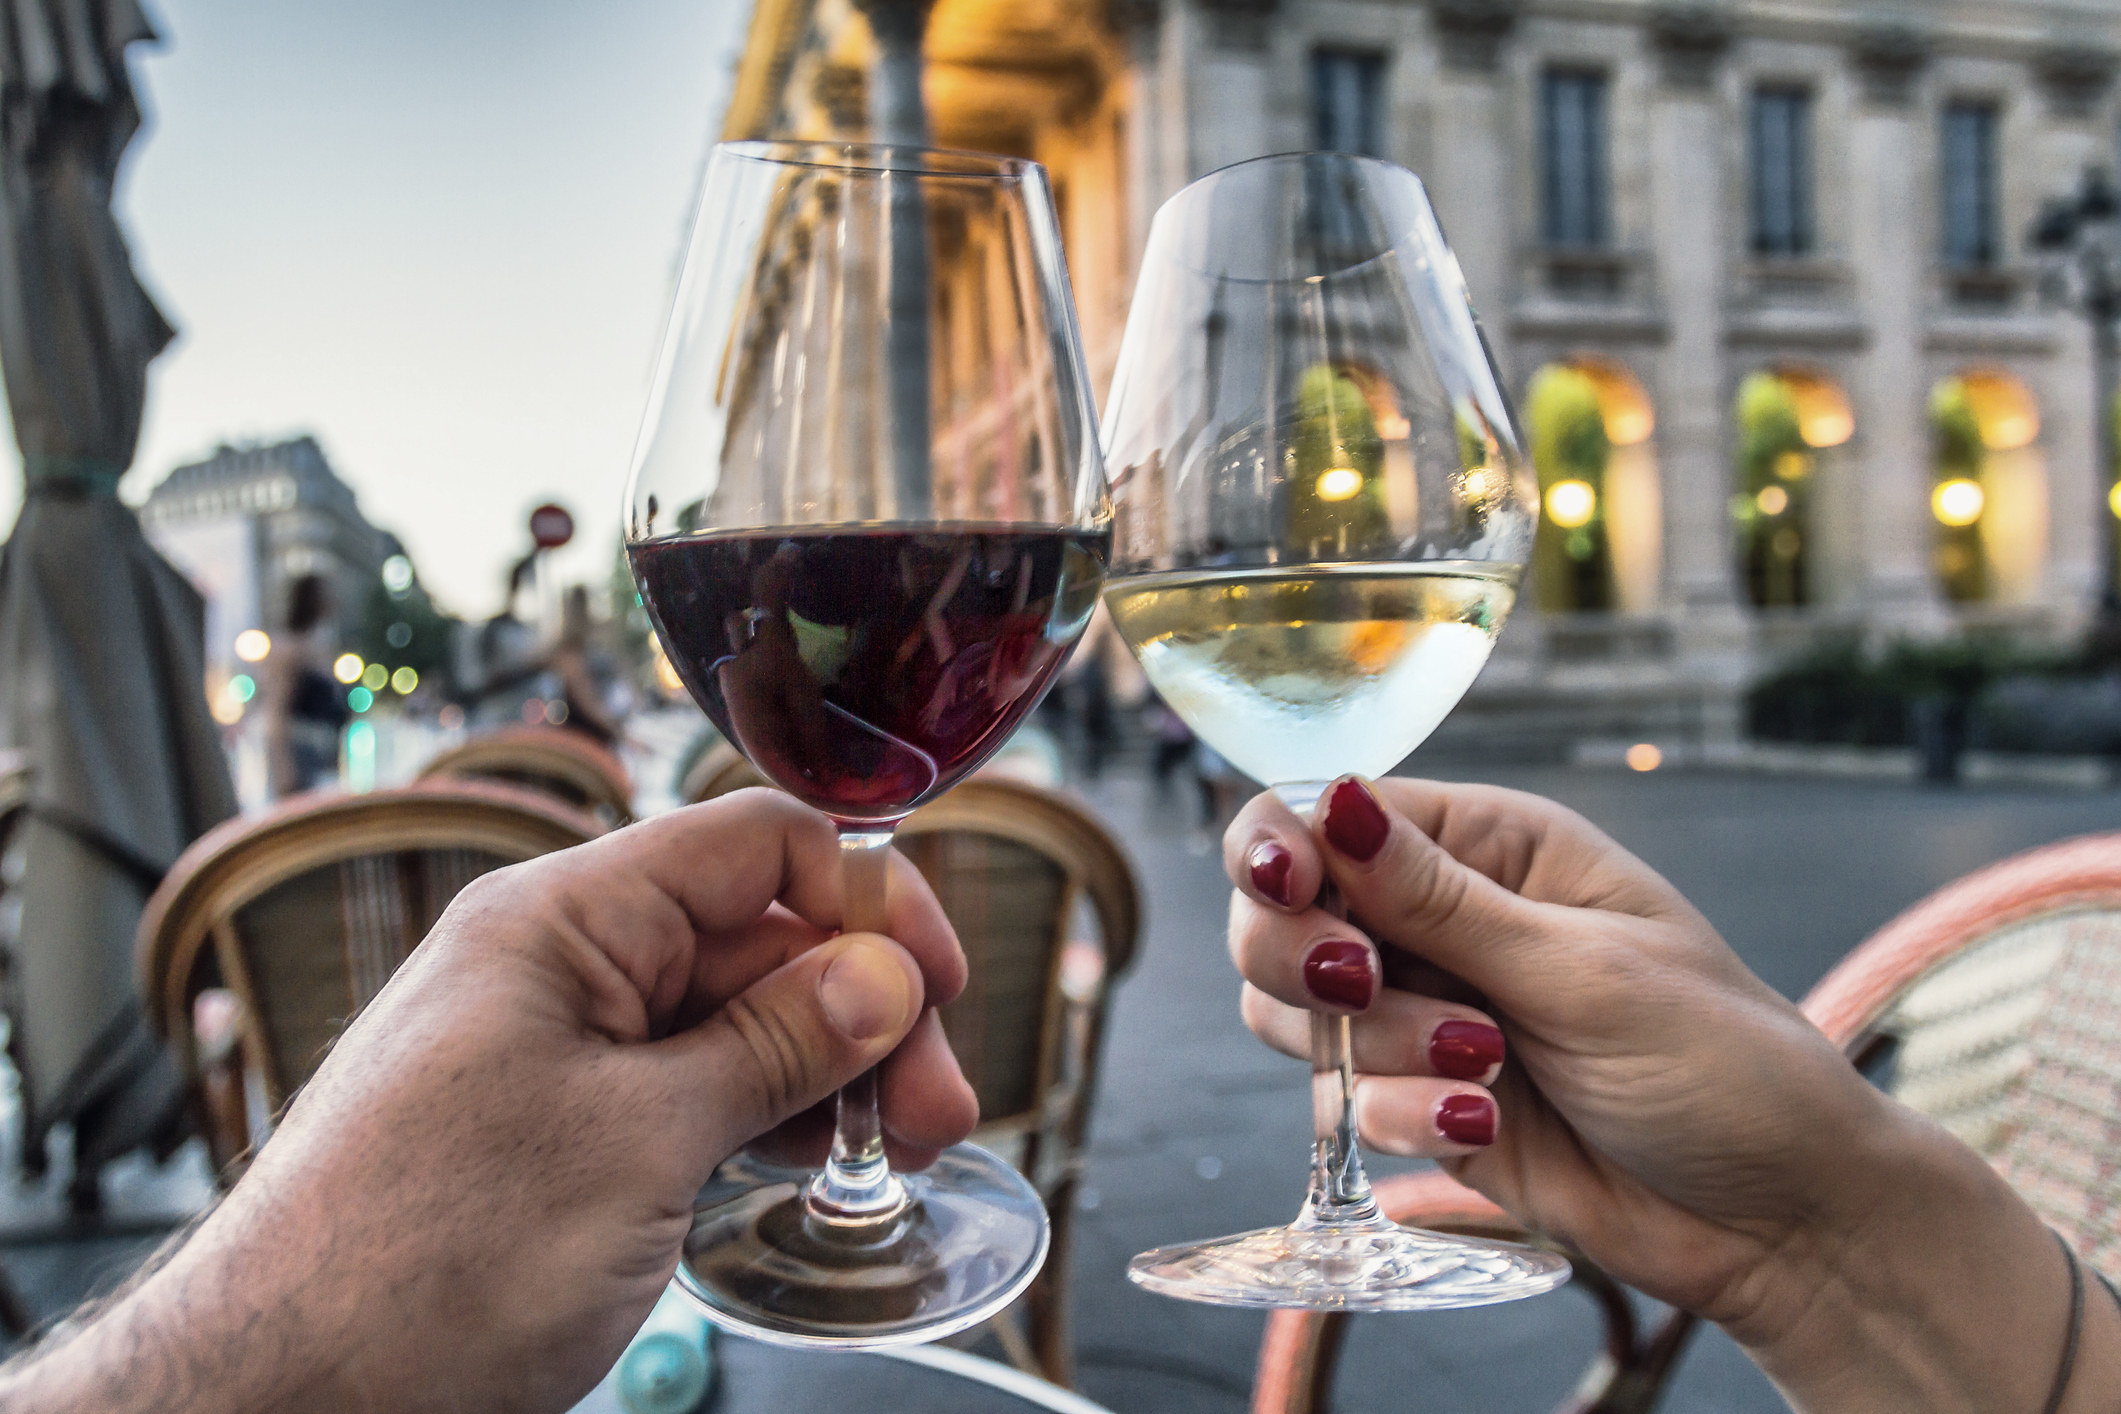 Couple raising glasses with red and white wine in Bordeaux, France